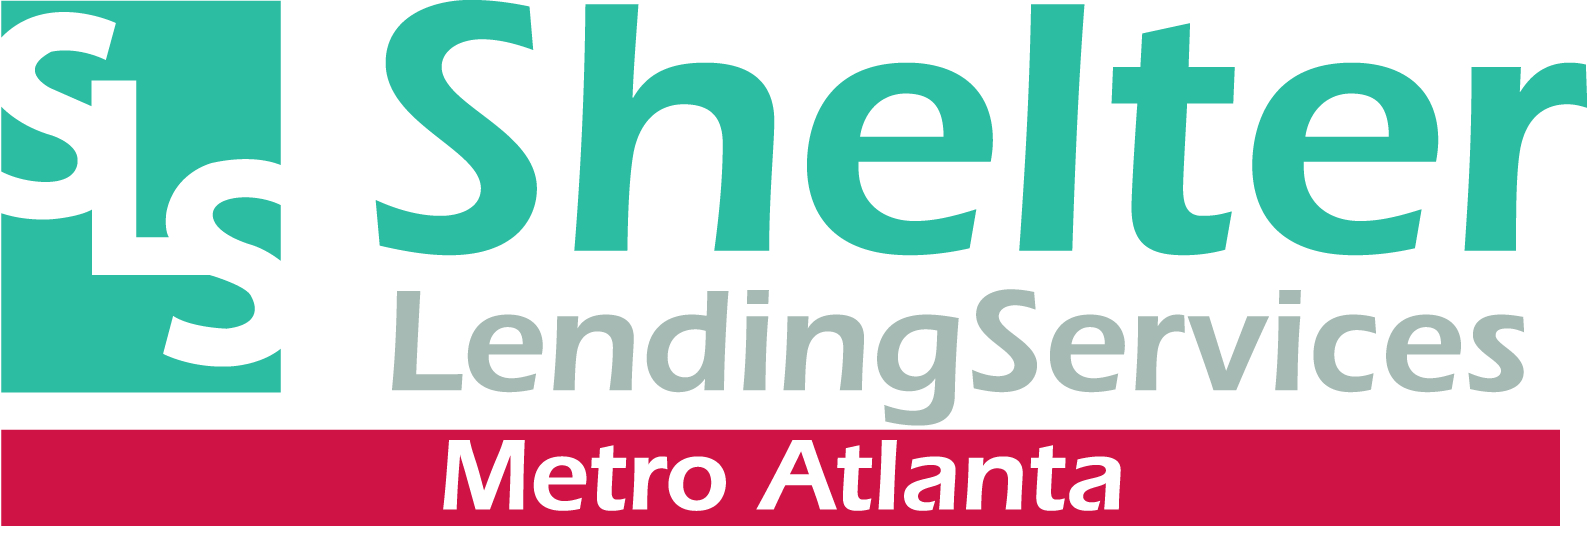 Keller Williams Realty Metro Atlanta partners with Shelter Lending Services